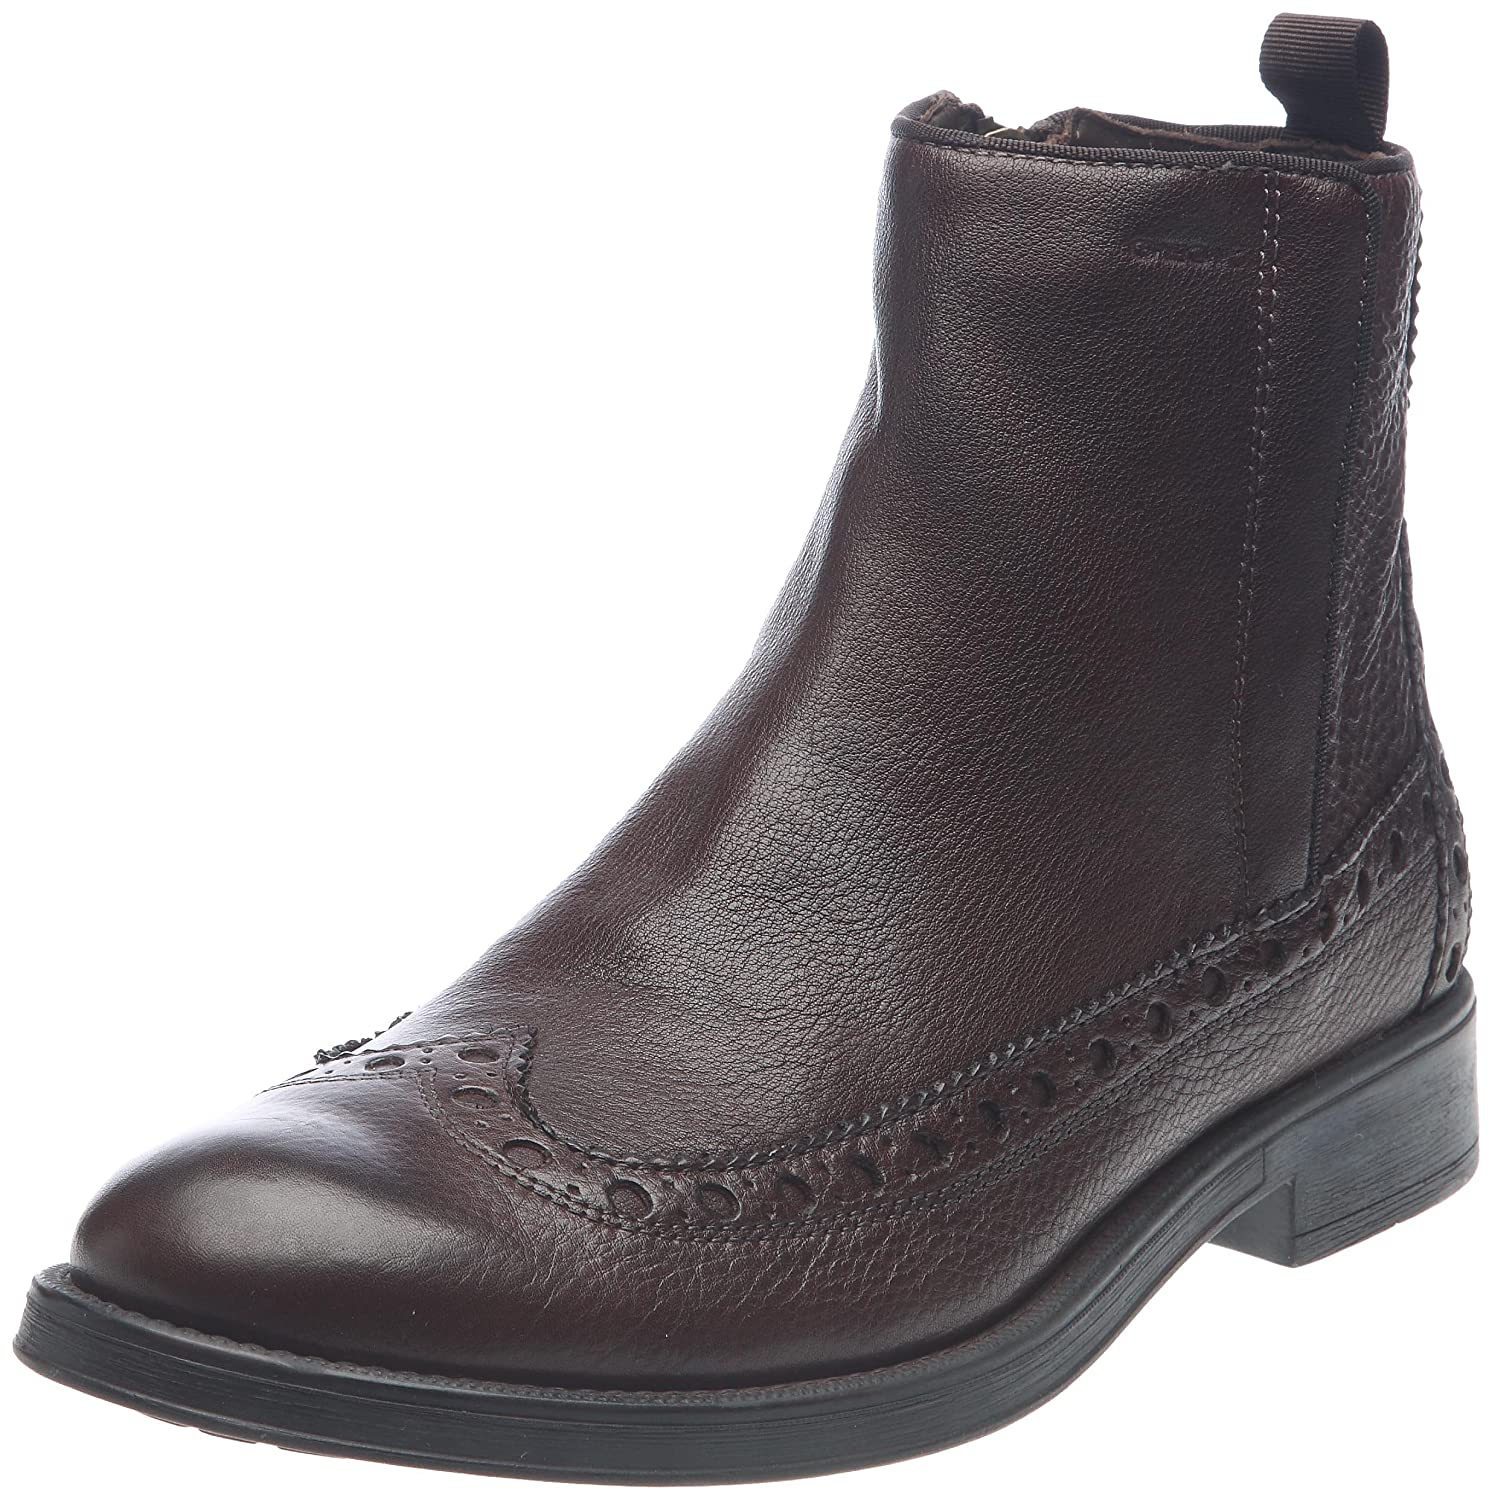 Soldes Marron Marron Geox Chaussures Boots Boots Cuir Blade